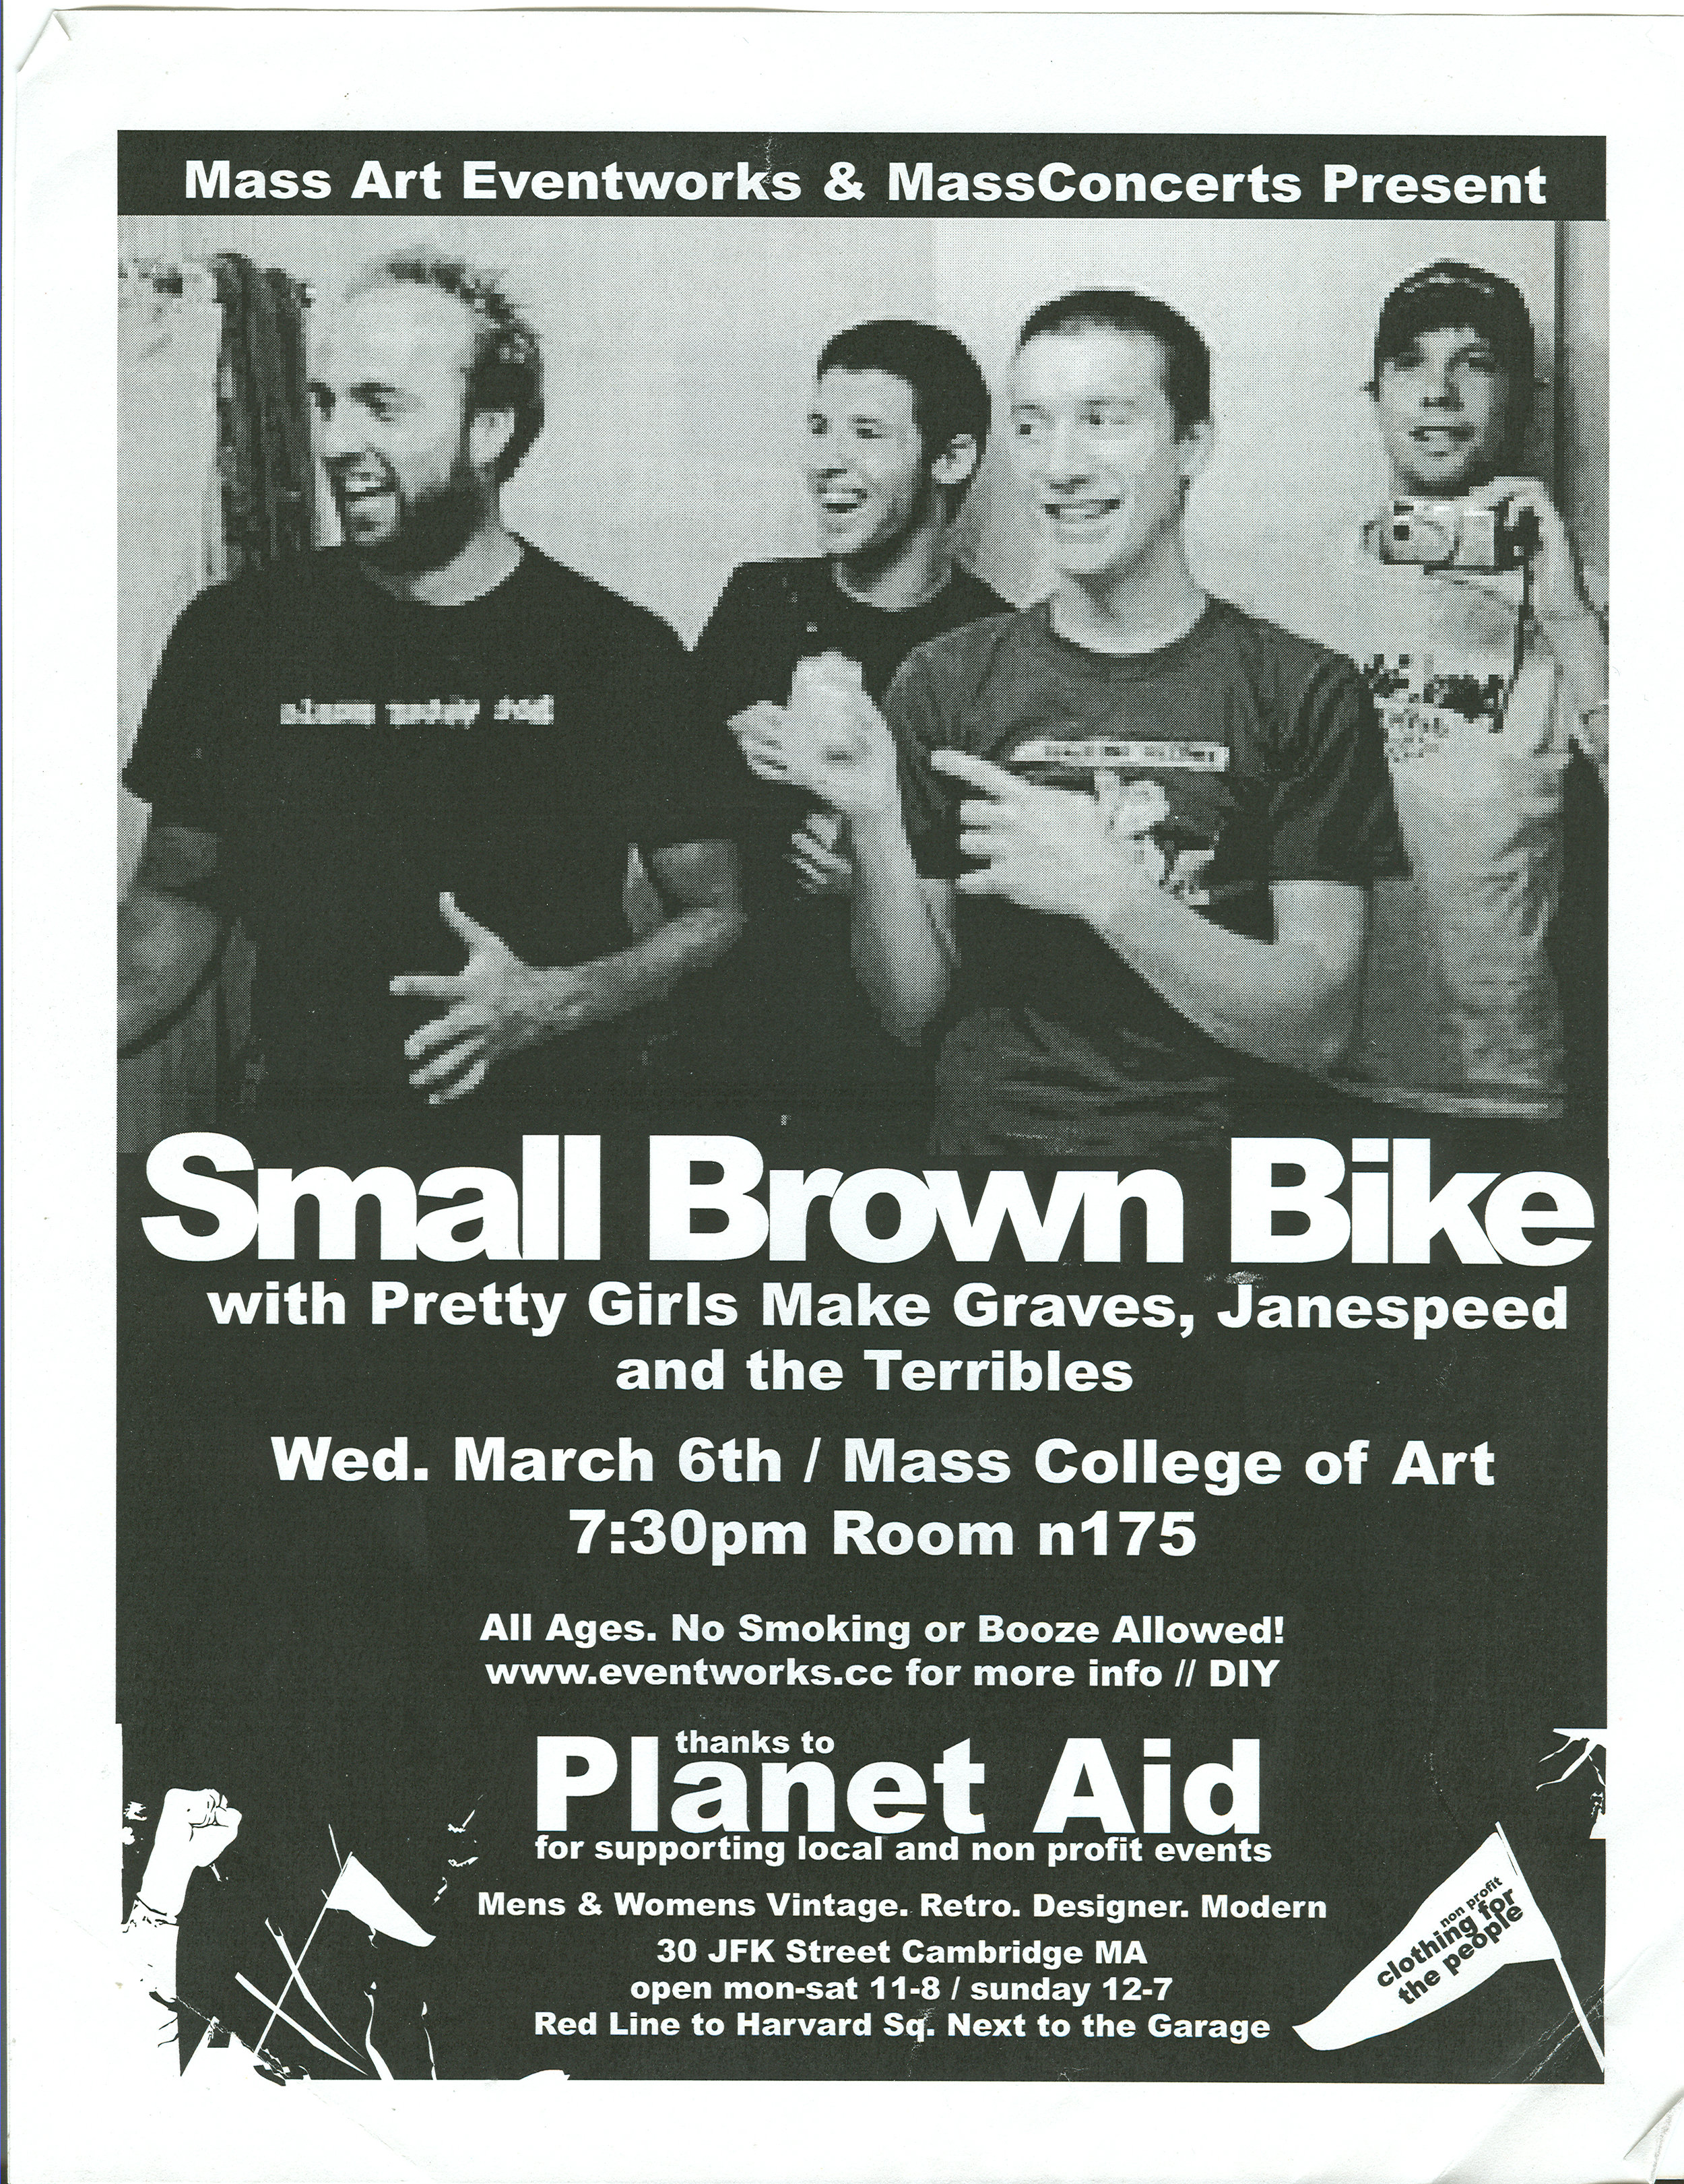 03.06.02-BOSTON-MASSART-SMALL_BROWN_BIKE.jpg